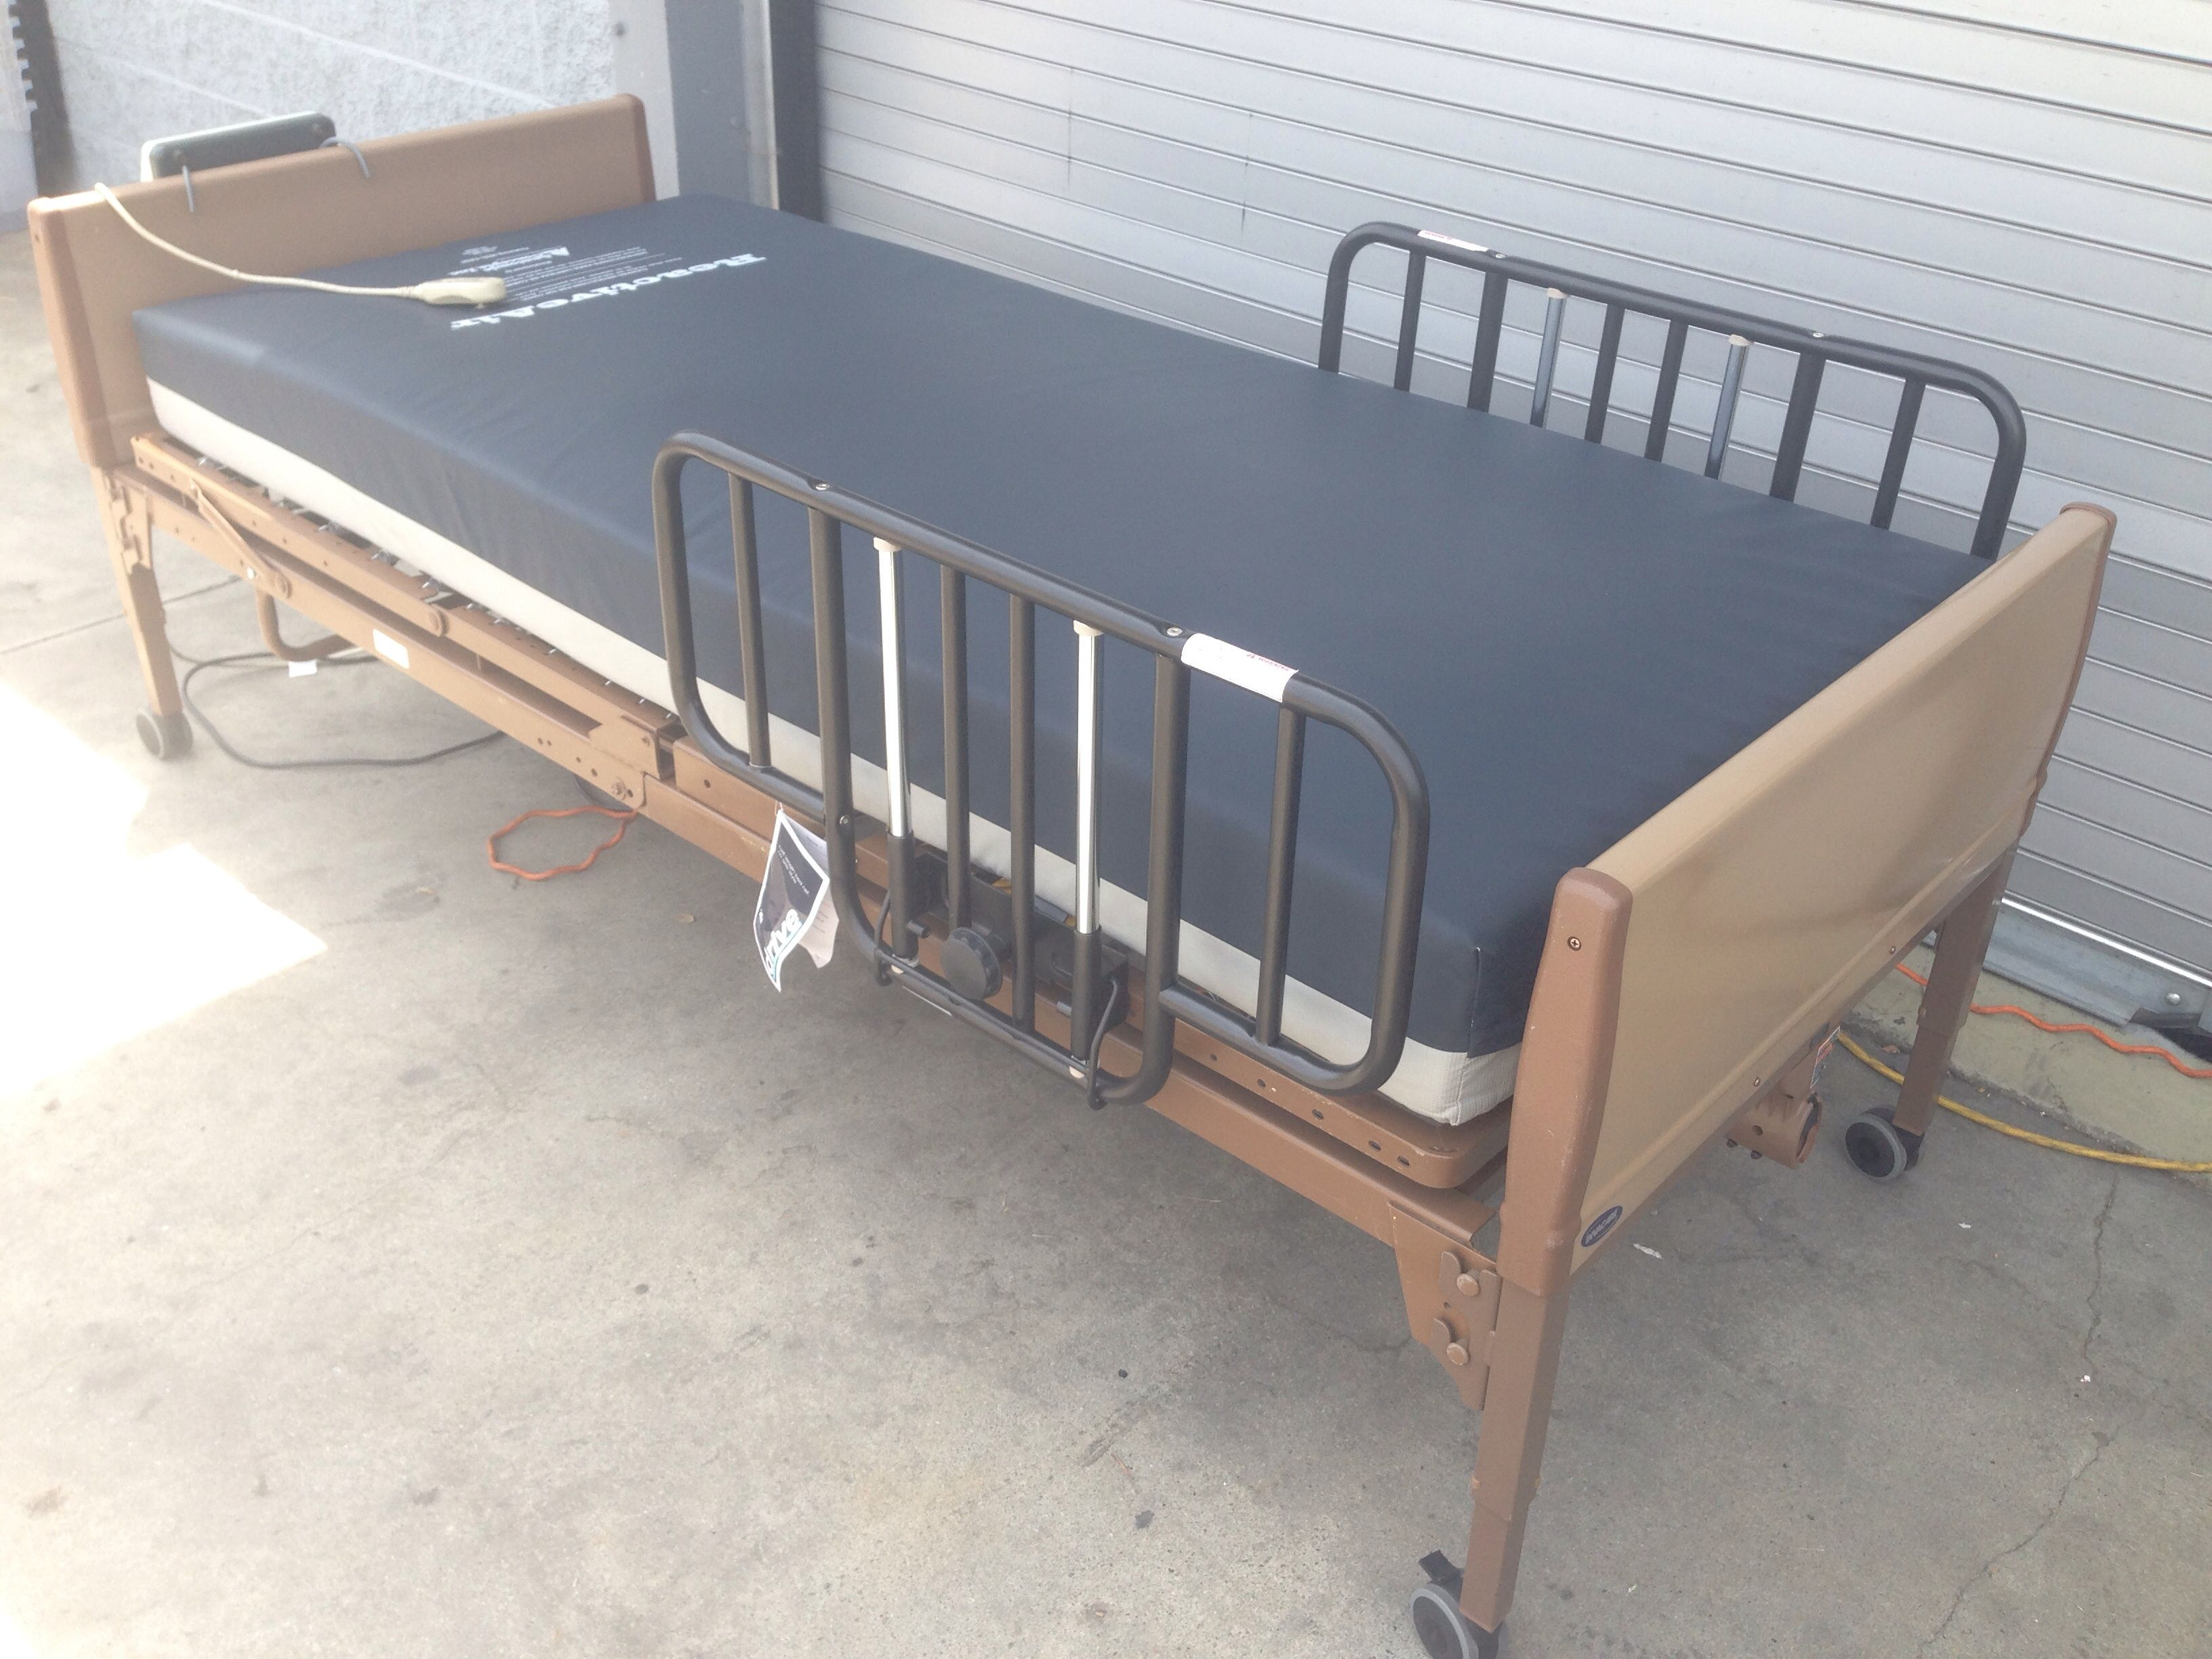 Reactive Air Mattress With Invacare Semi-Electric Bed (Used)